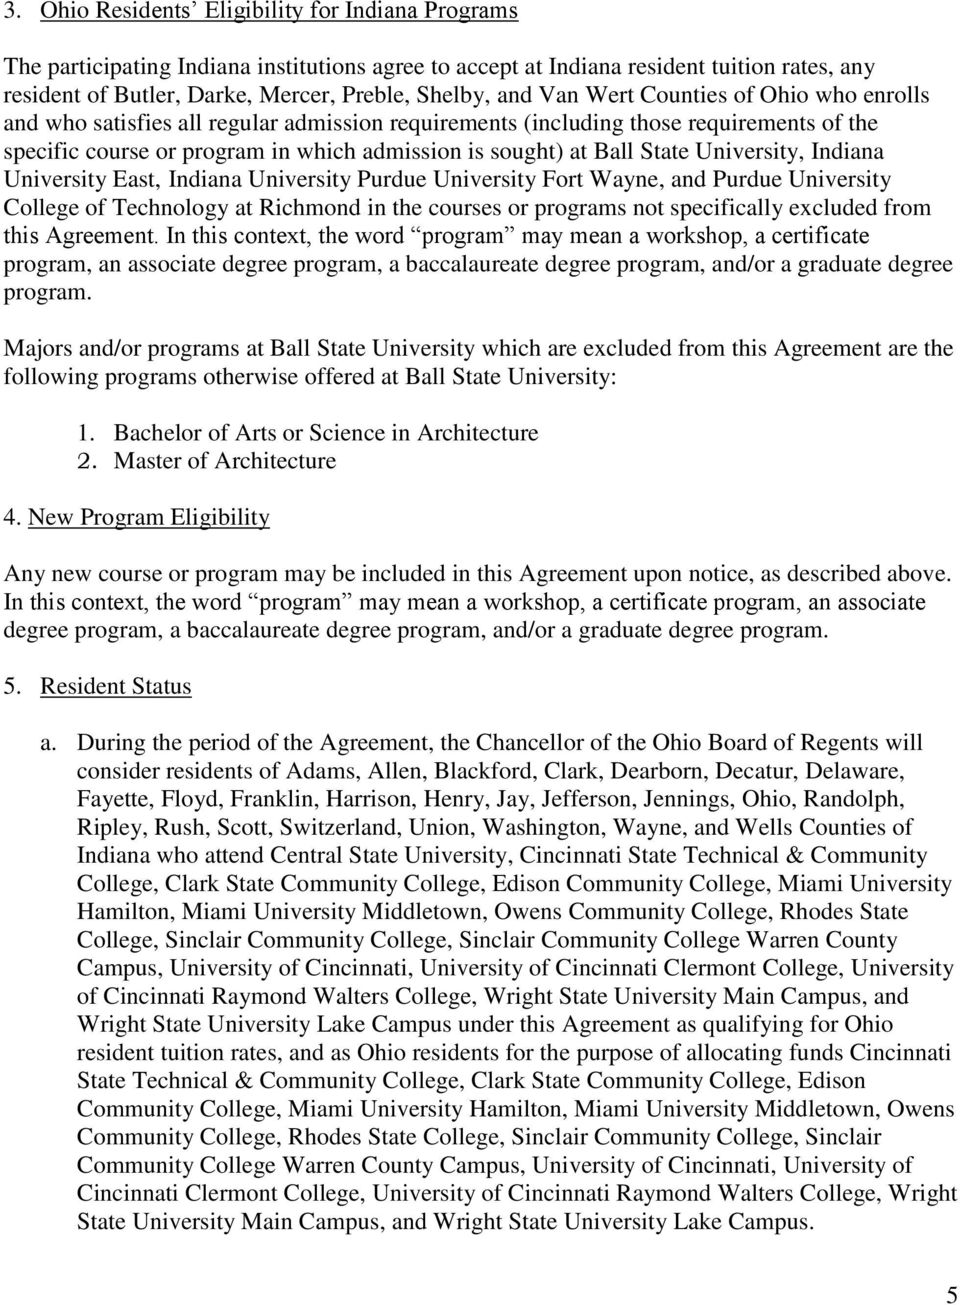 University, Indiana University East, Indiana University Purdue University Fort Wayne, and Purdue University College of Technology at Richmond in the courses or programs not specifically excluded from